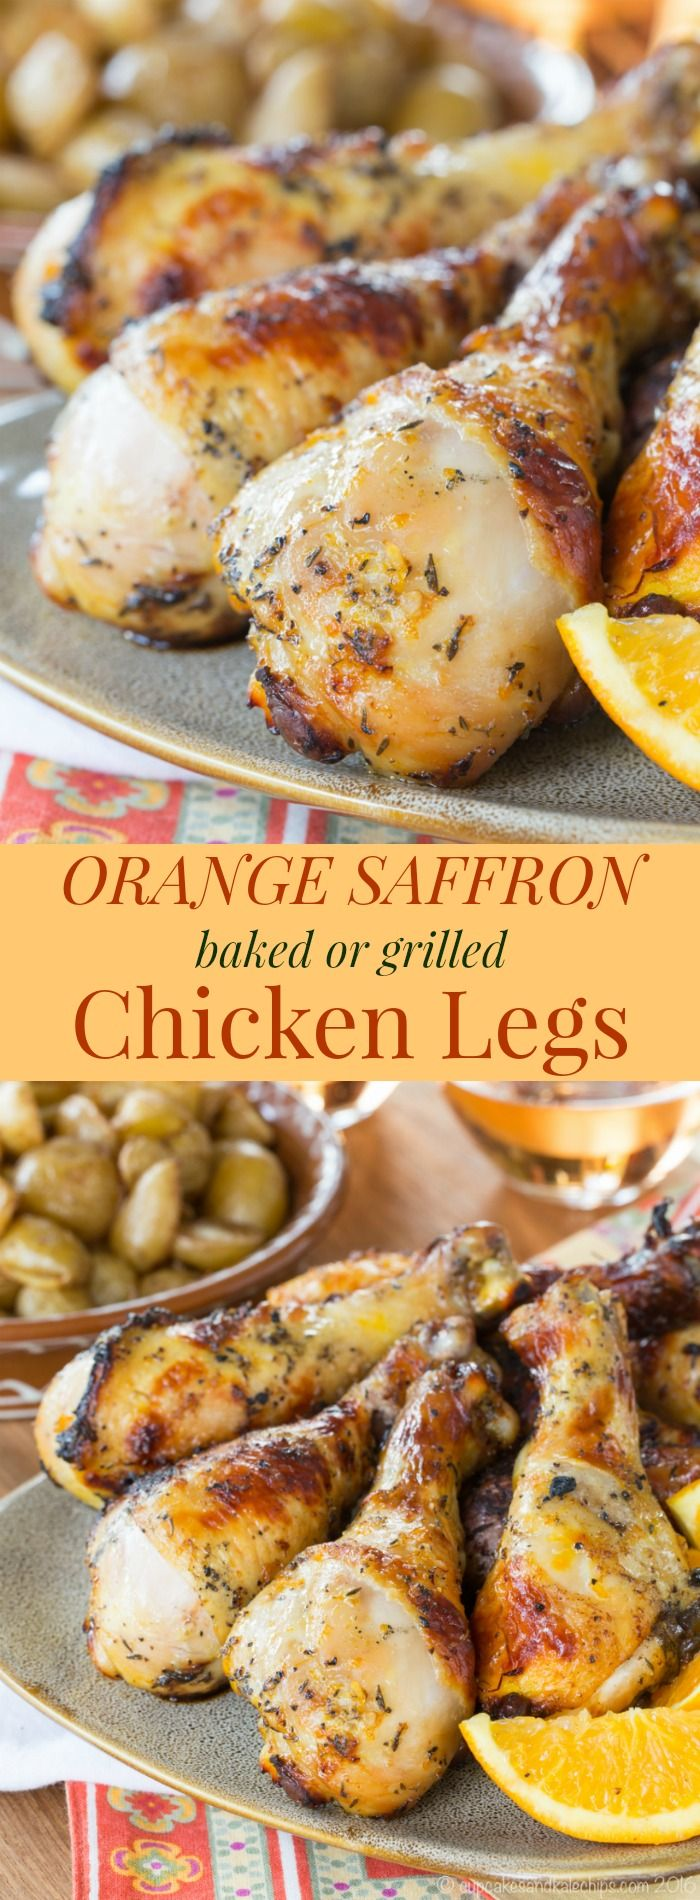 how to cook with saffron